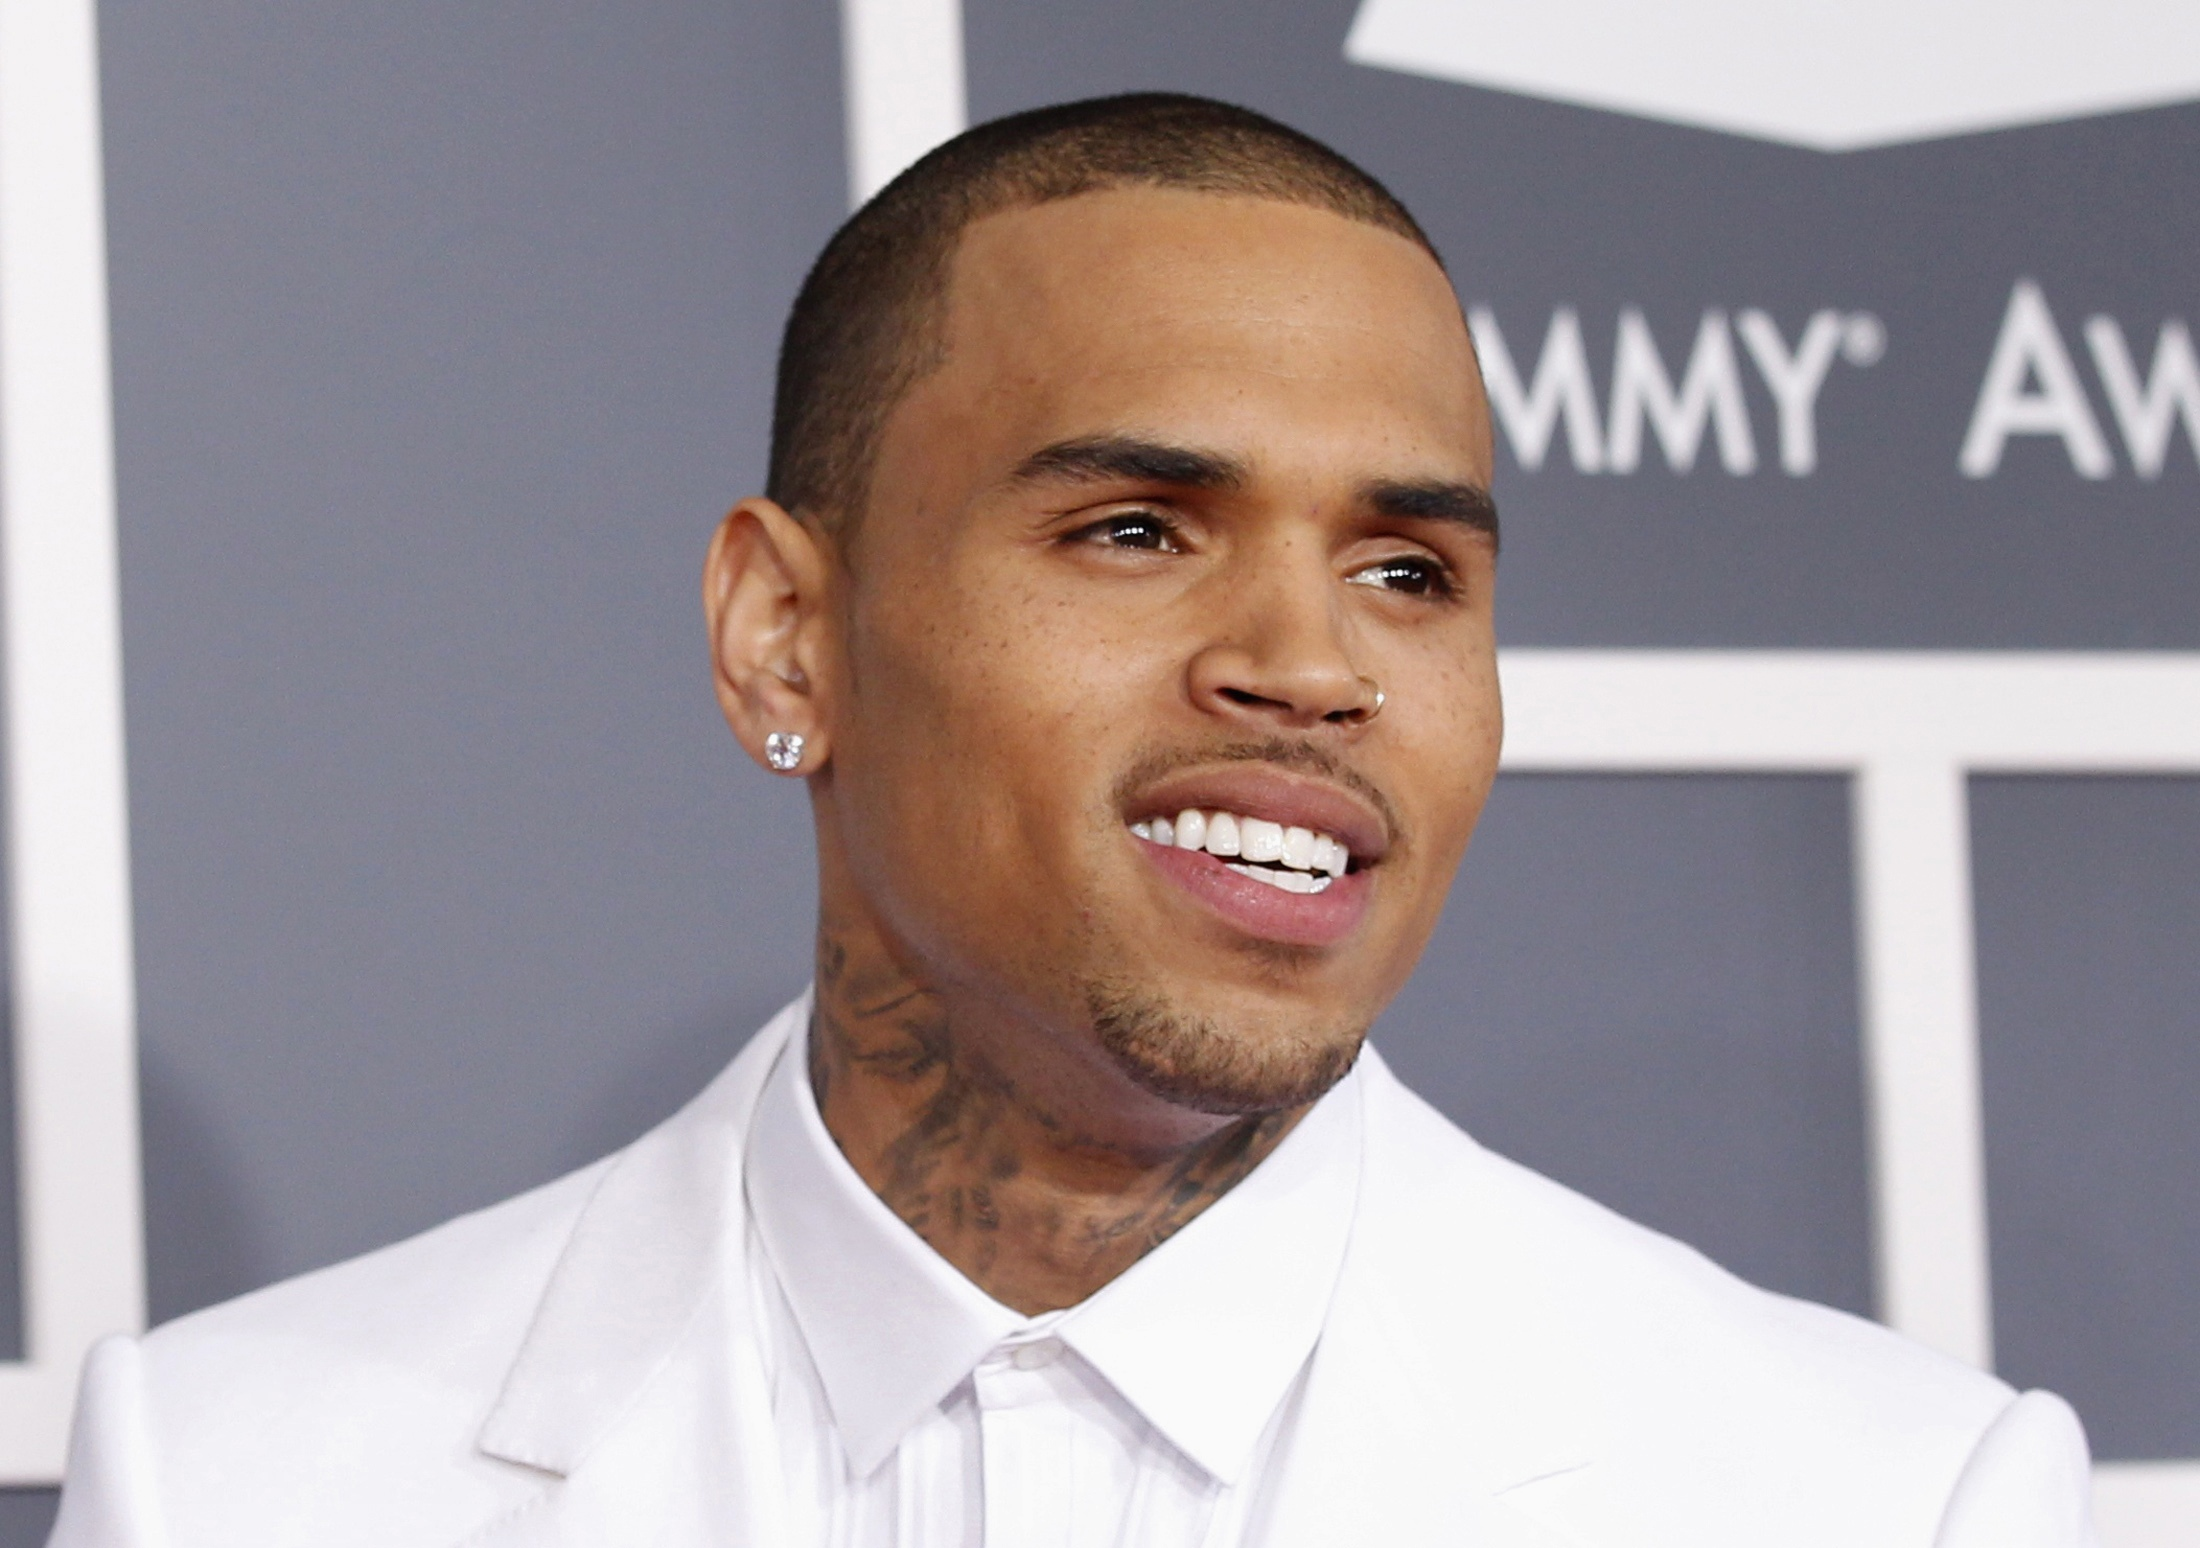 Singer Chris Brown arrives at the 55th annual Grammy Awards in L